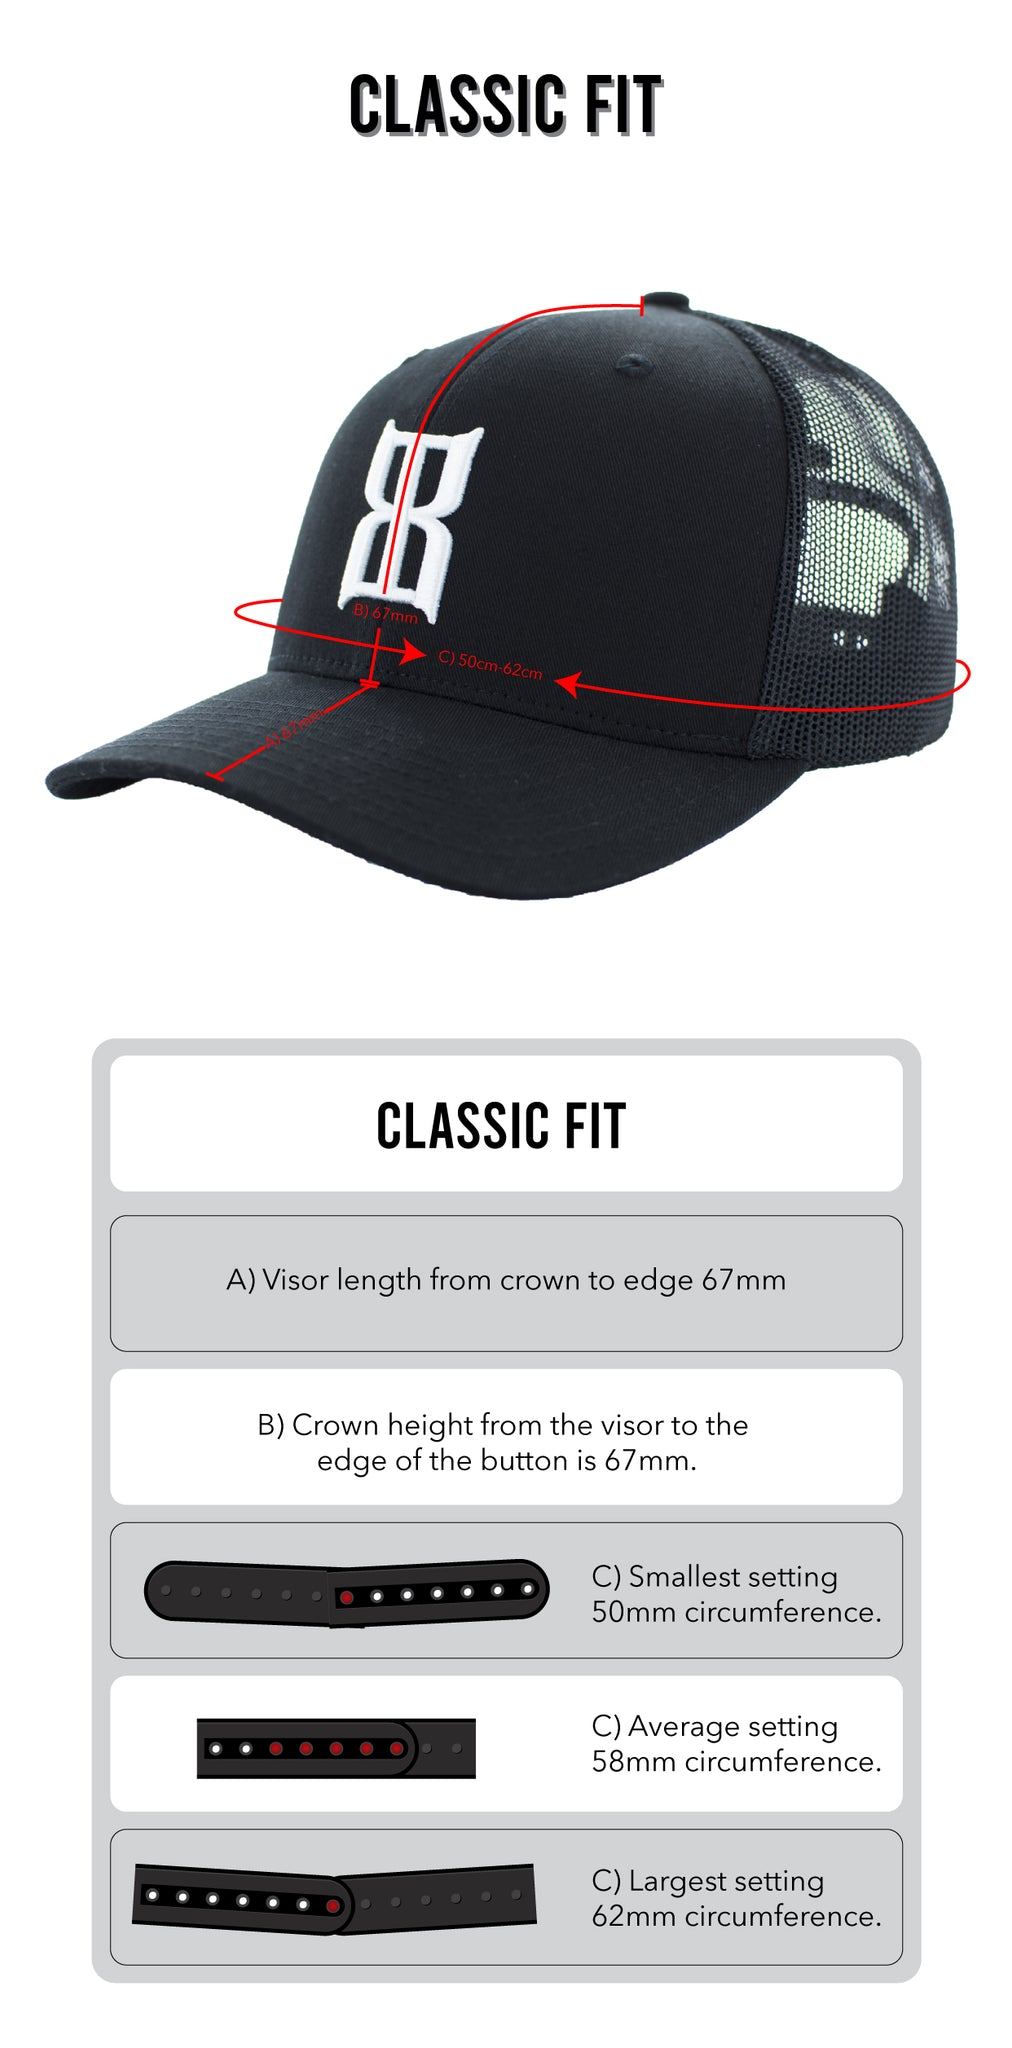 Classic Fit Guide